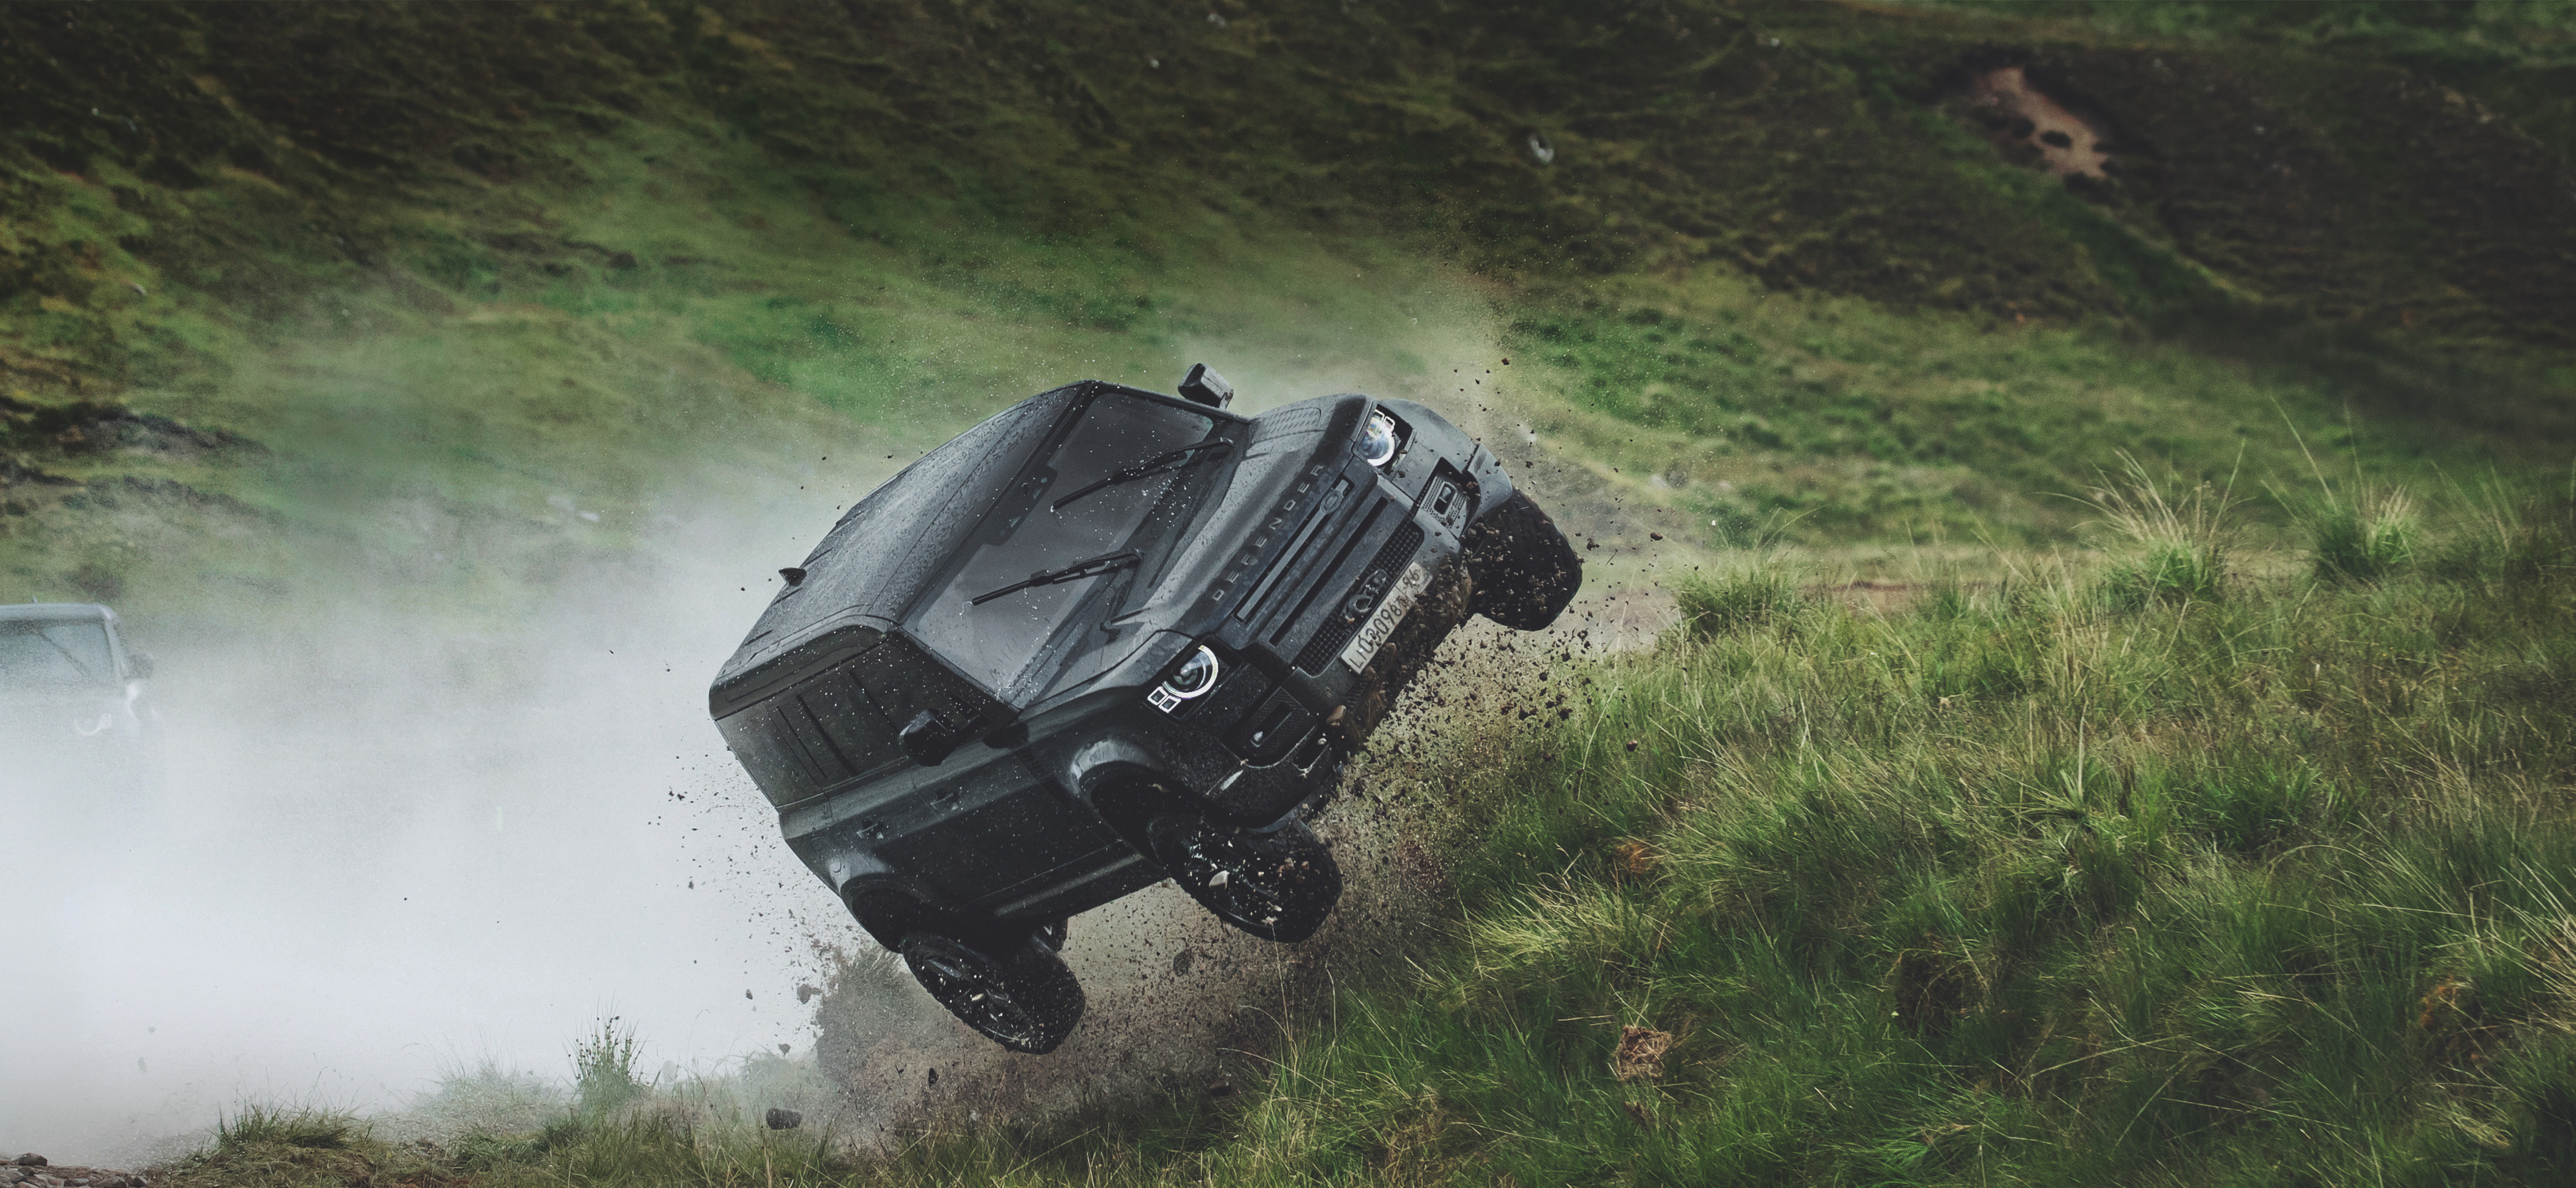 The hulking motor is put through its paces